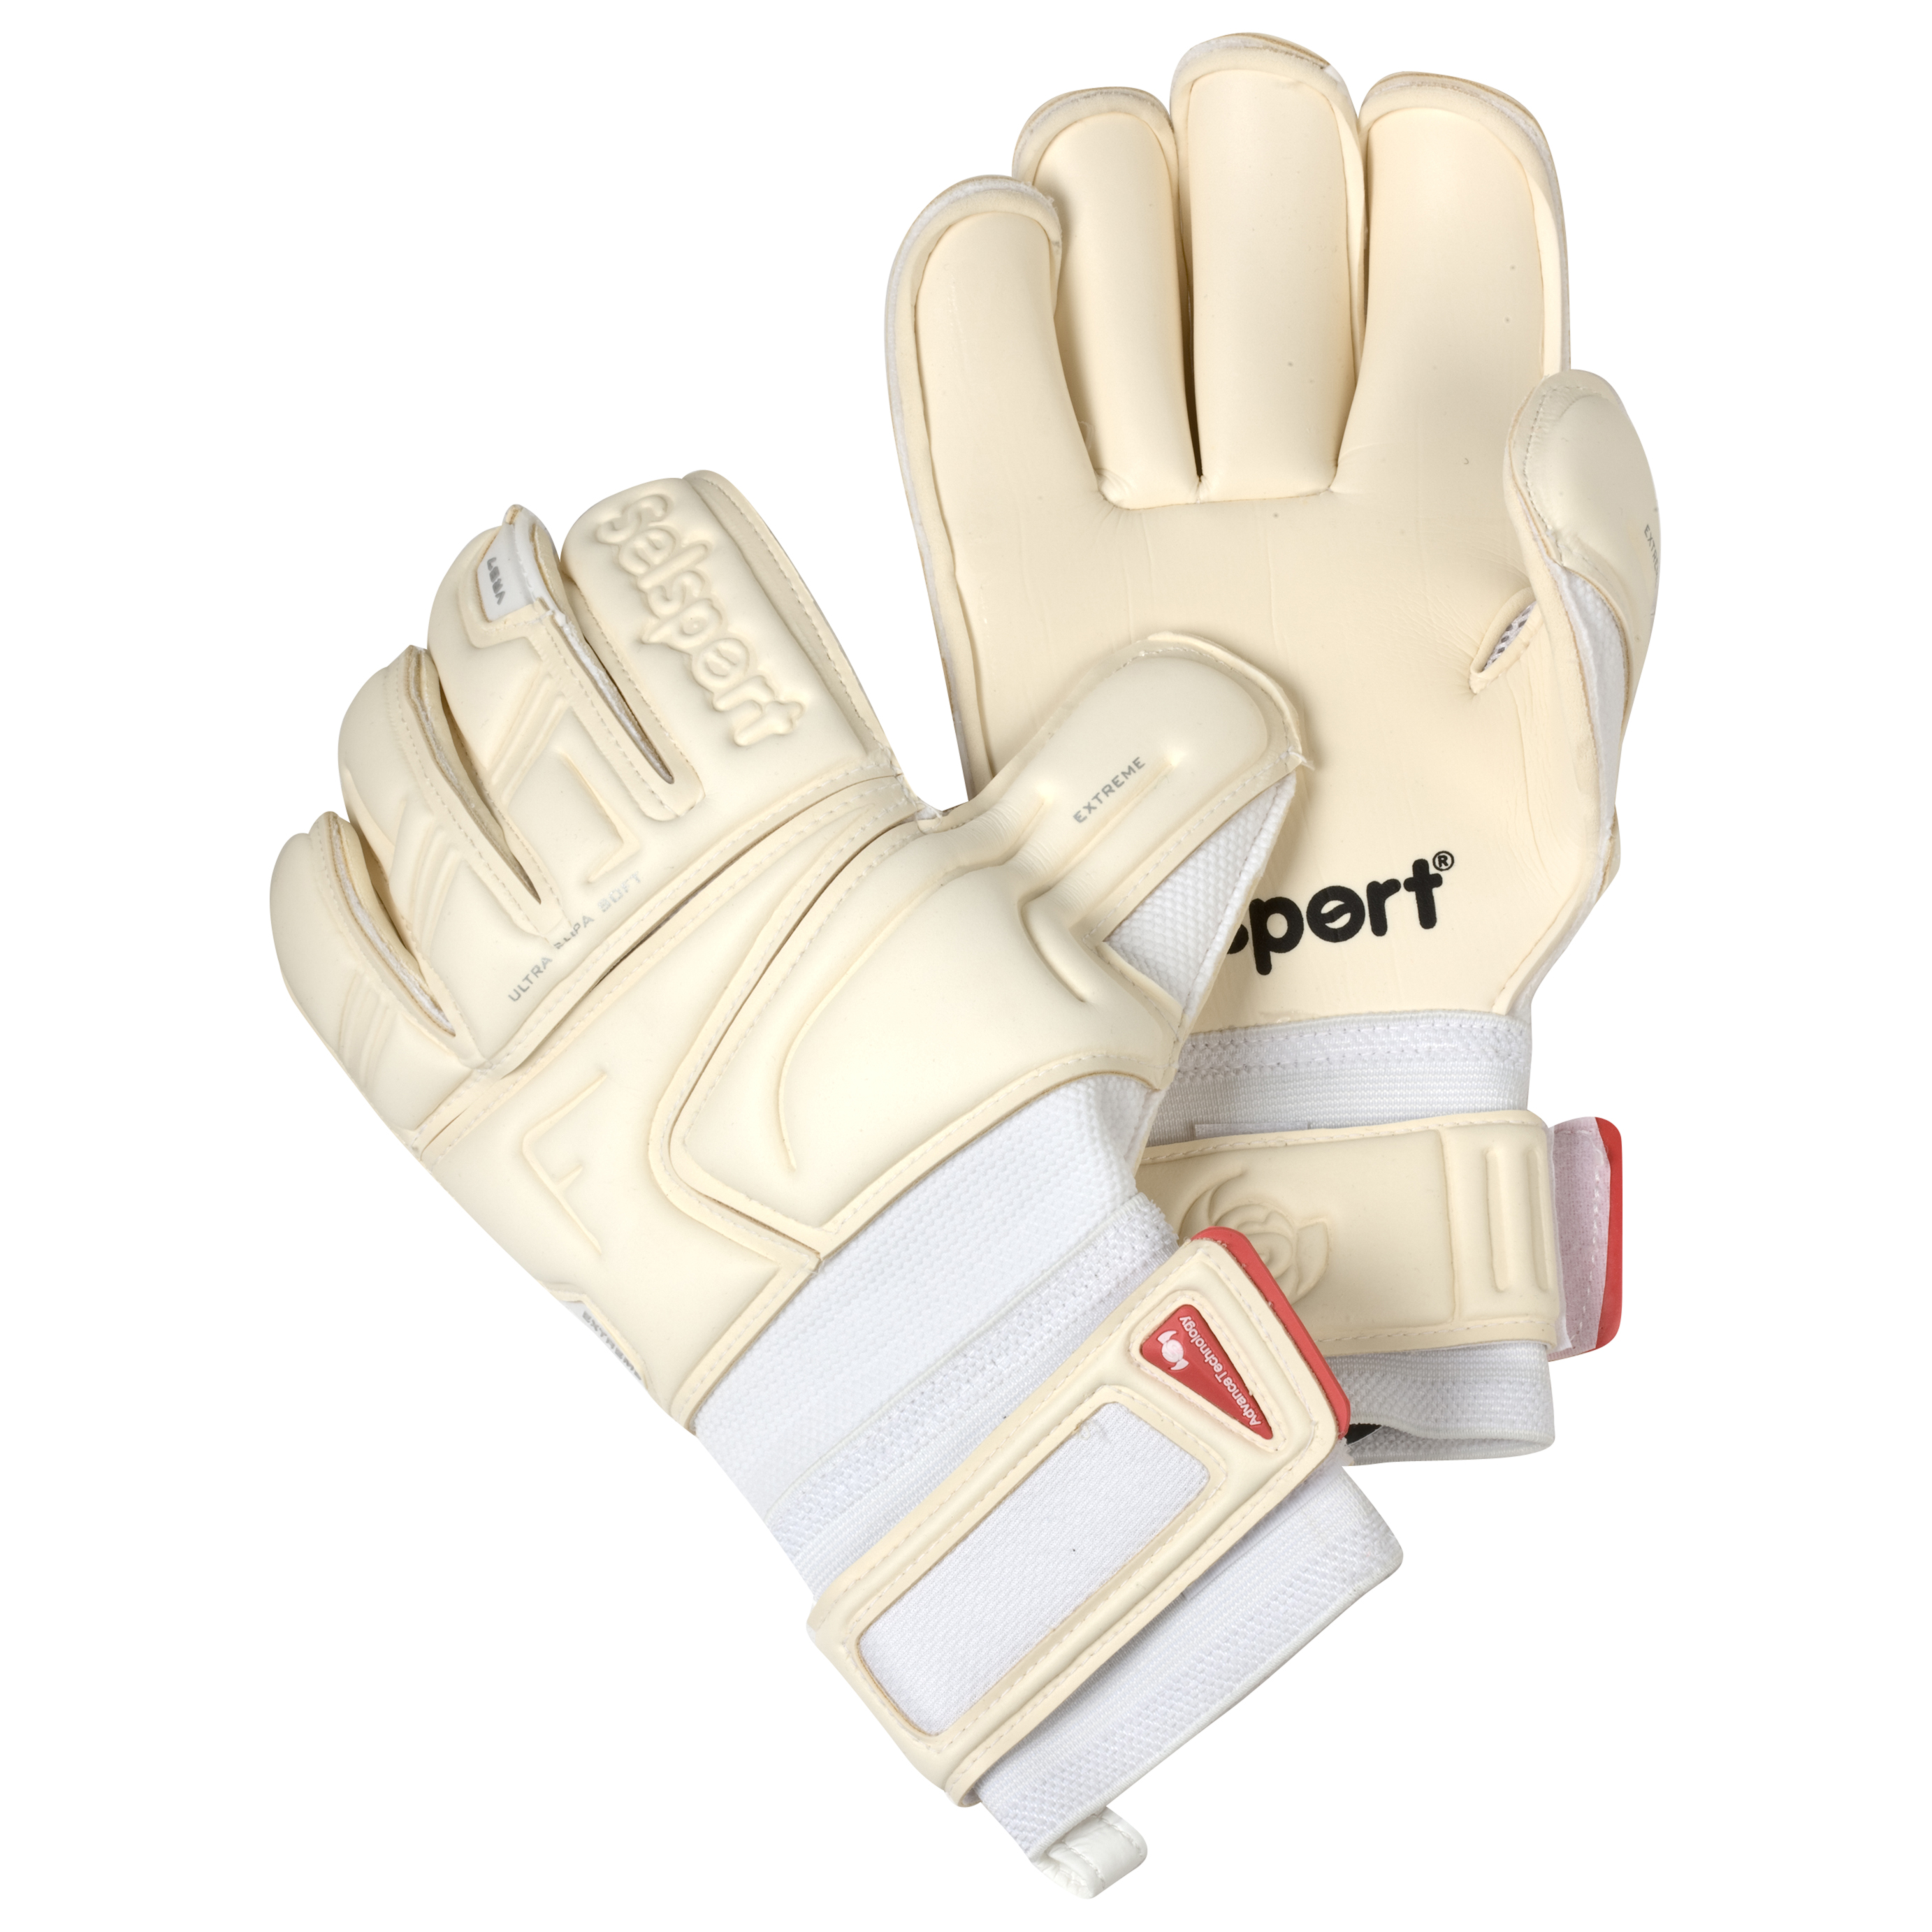 Selsport Extreme Pro Goalkeeper Gloves